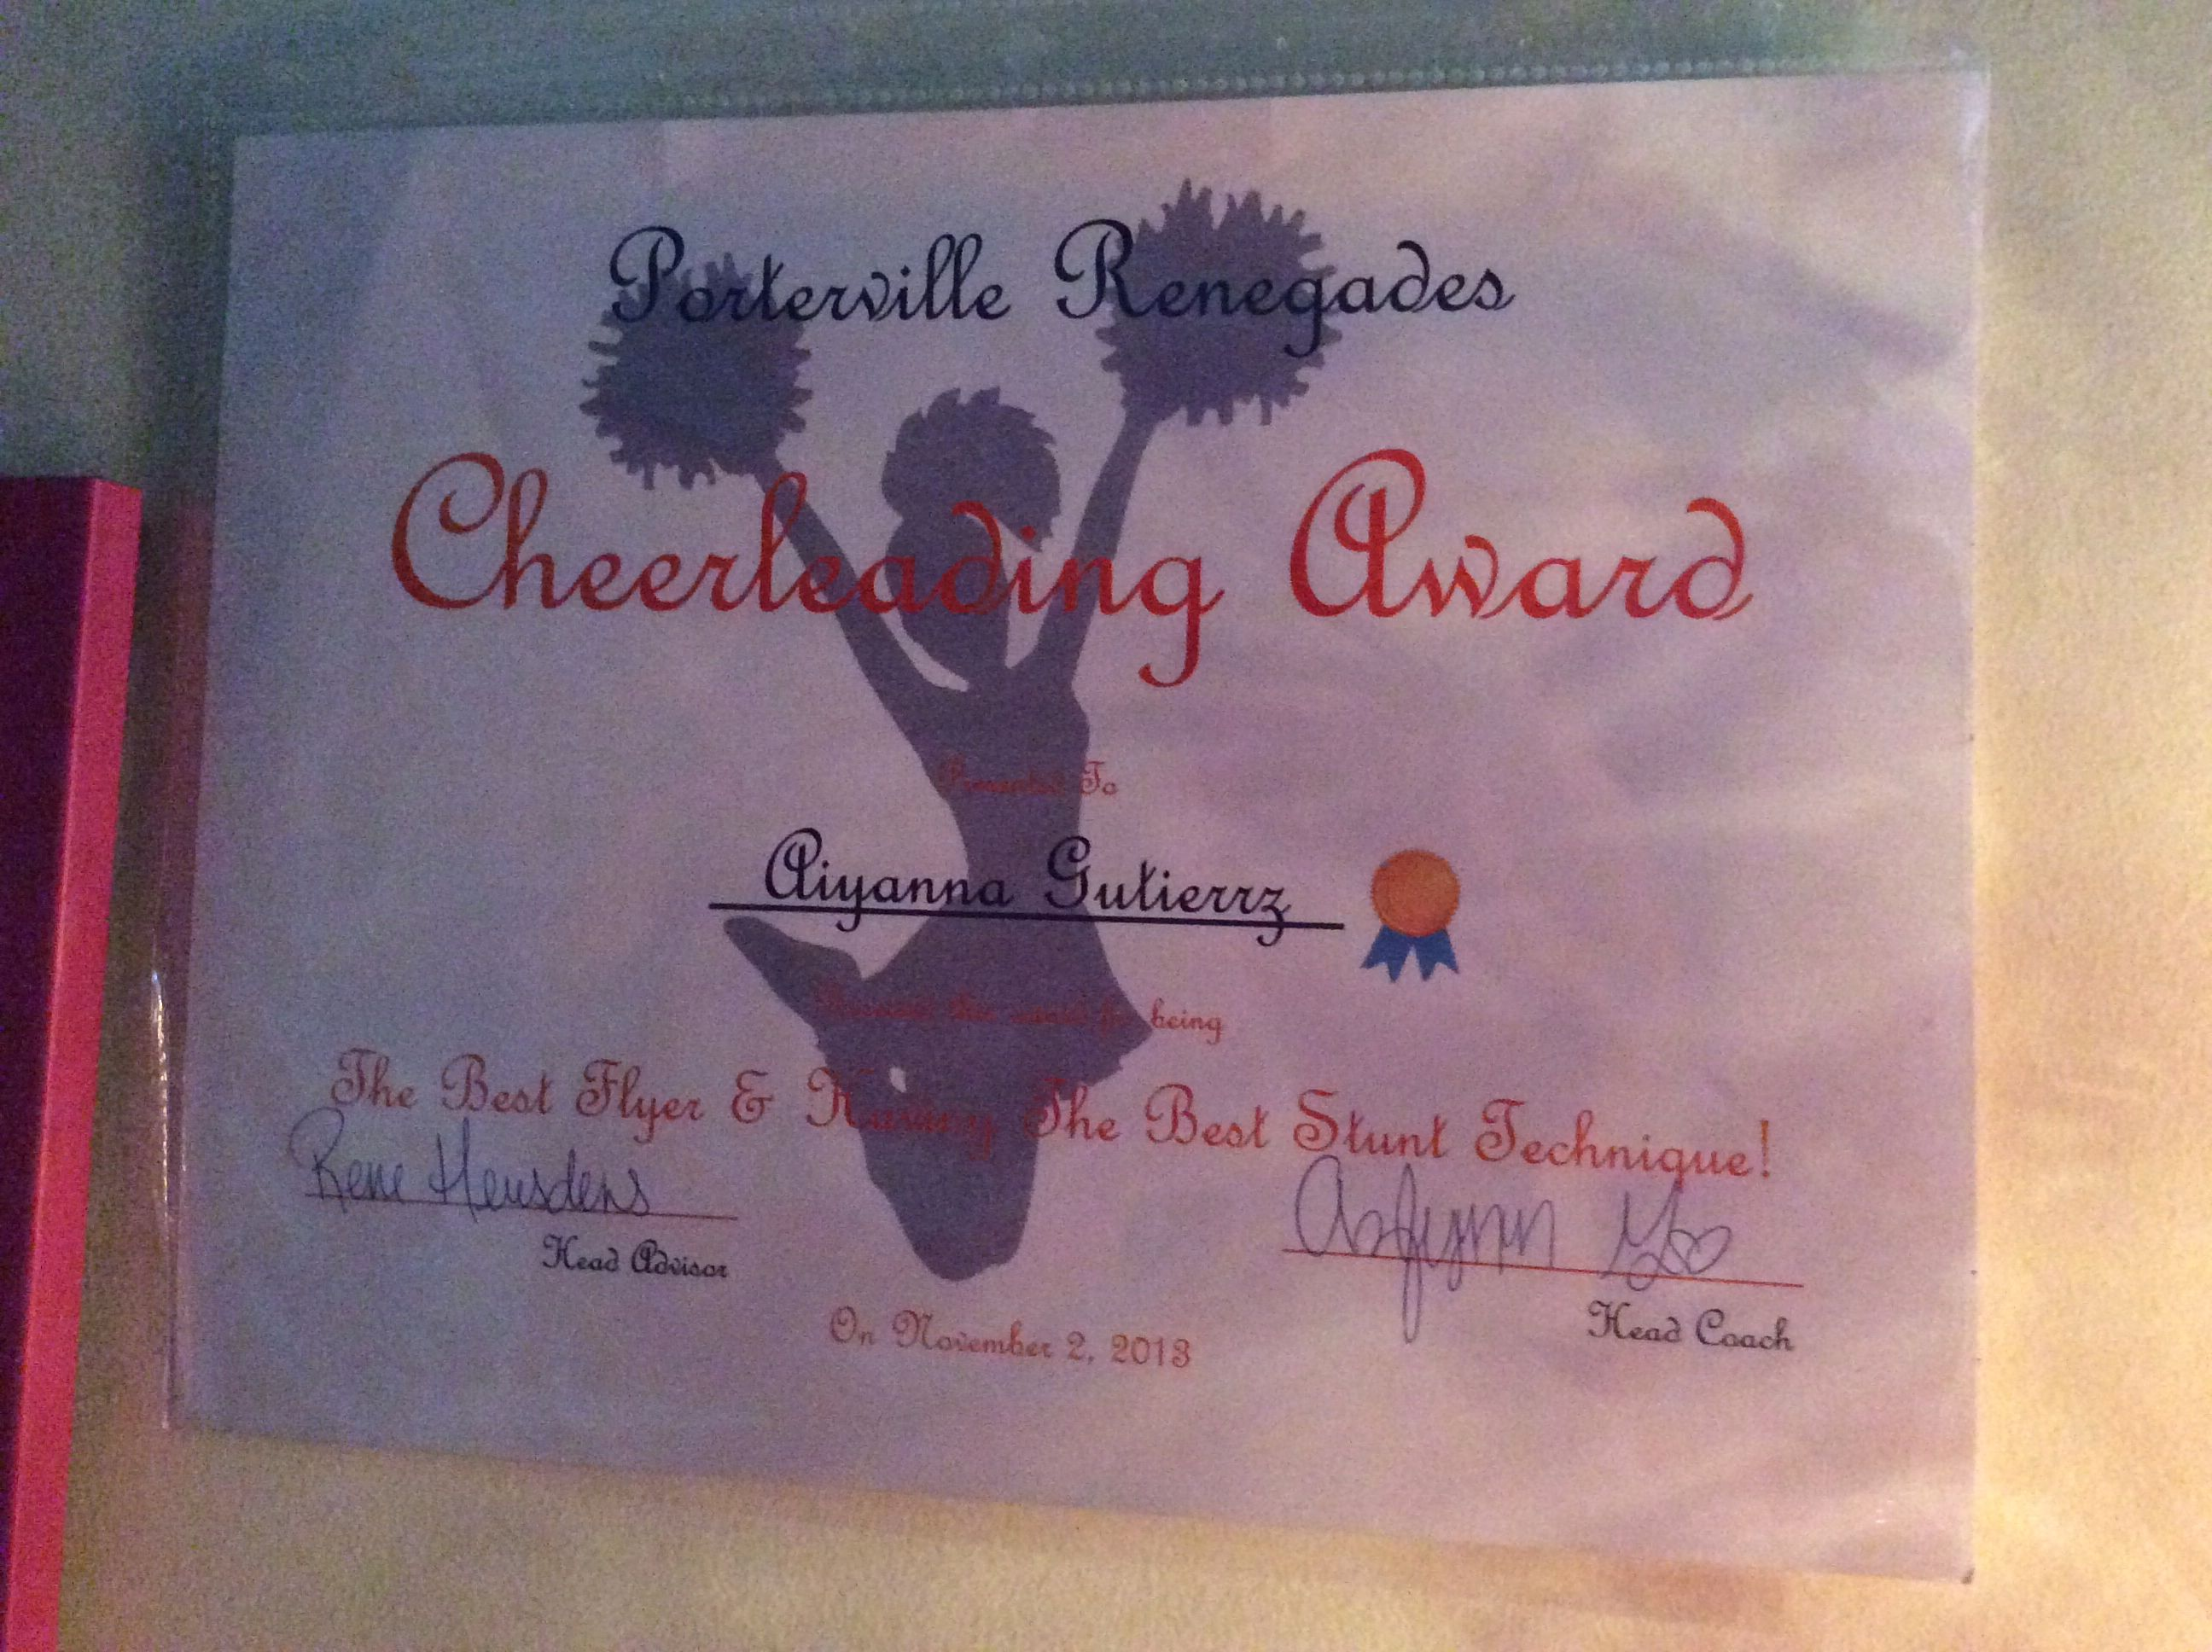 My cheer award for being the best flyer and having best stunt technique.